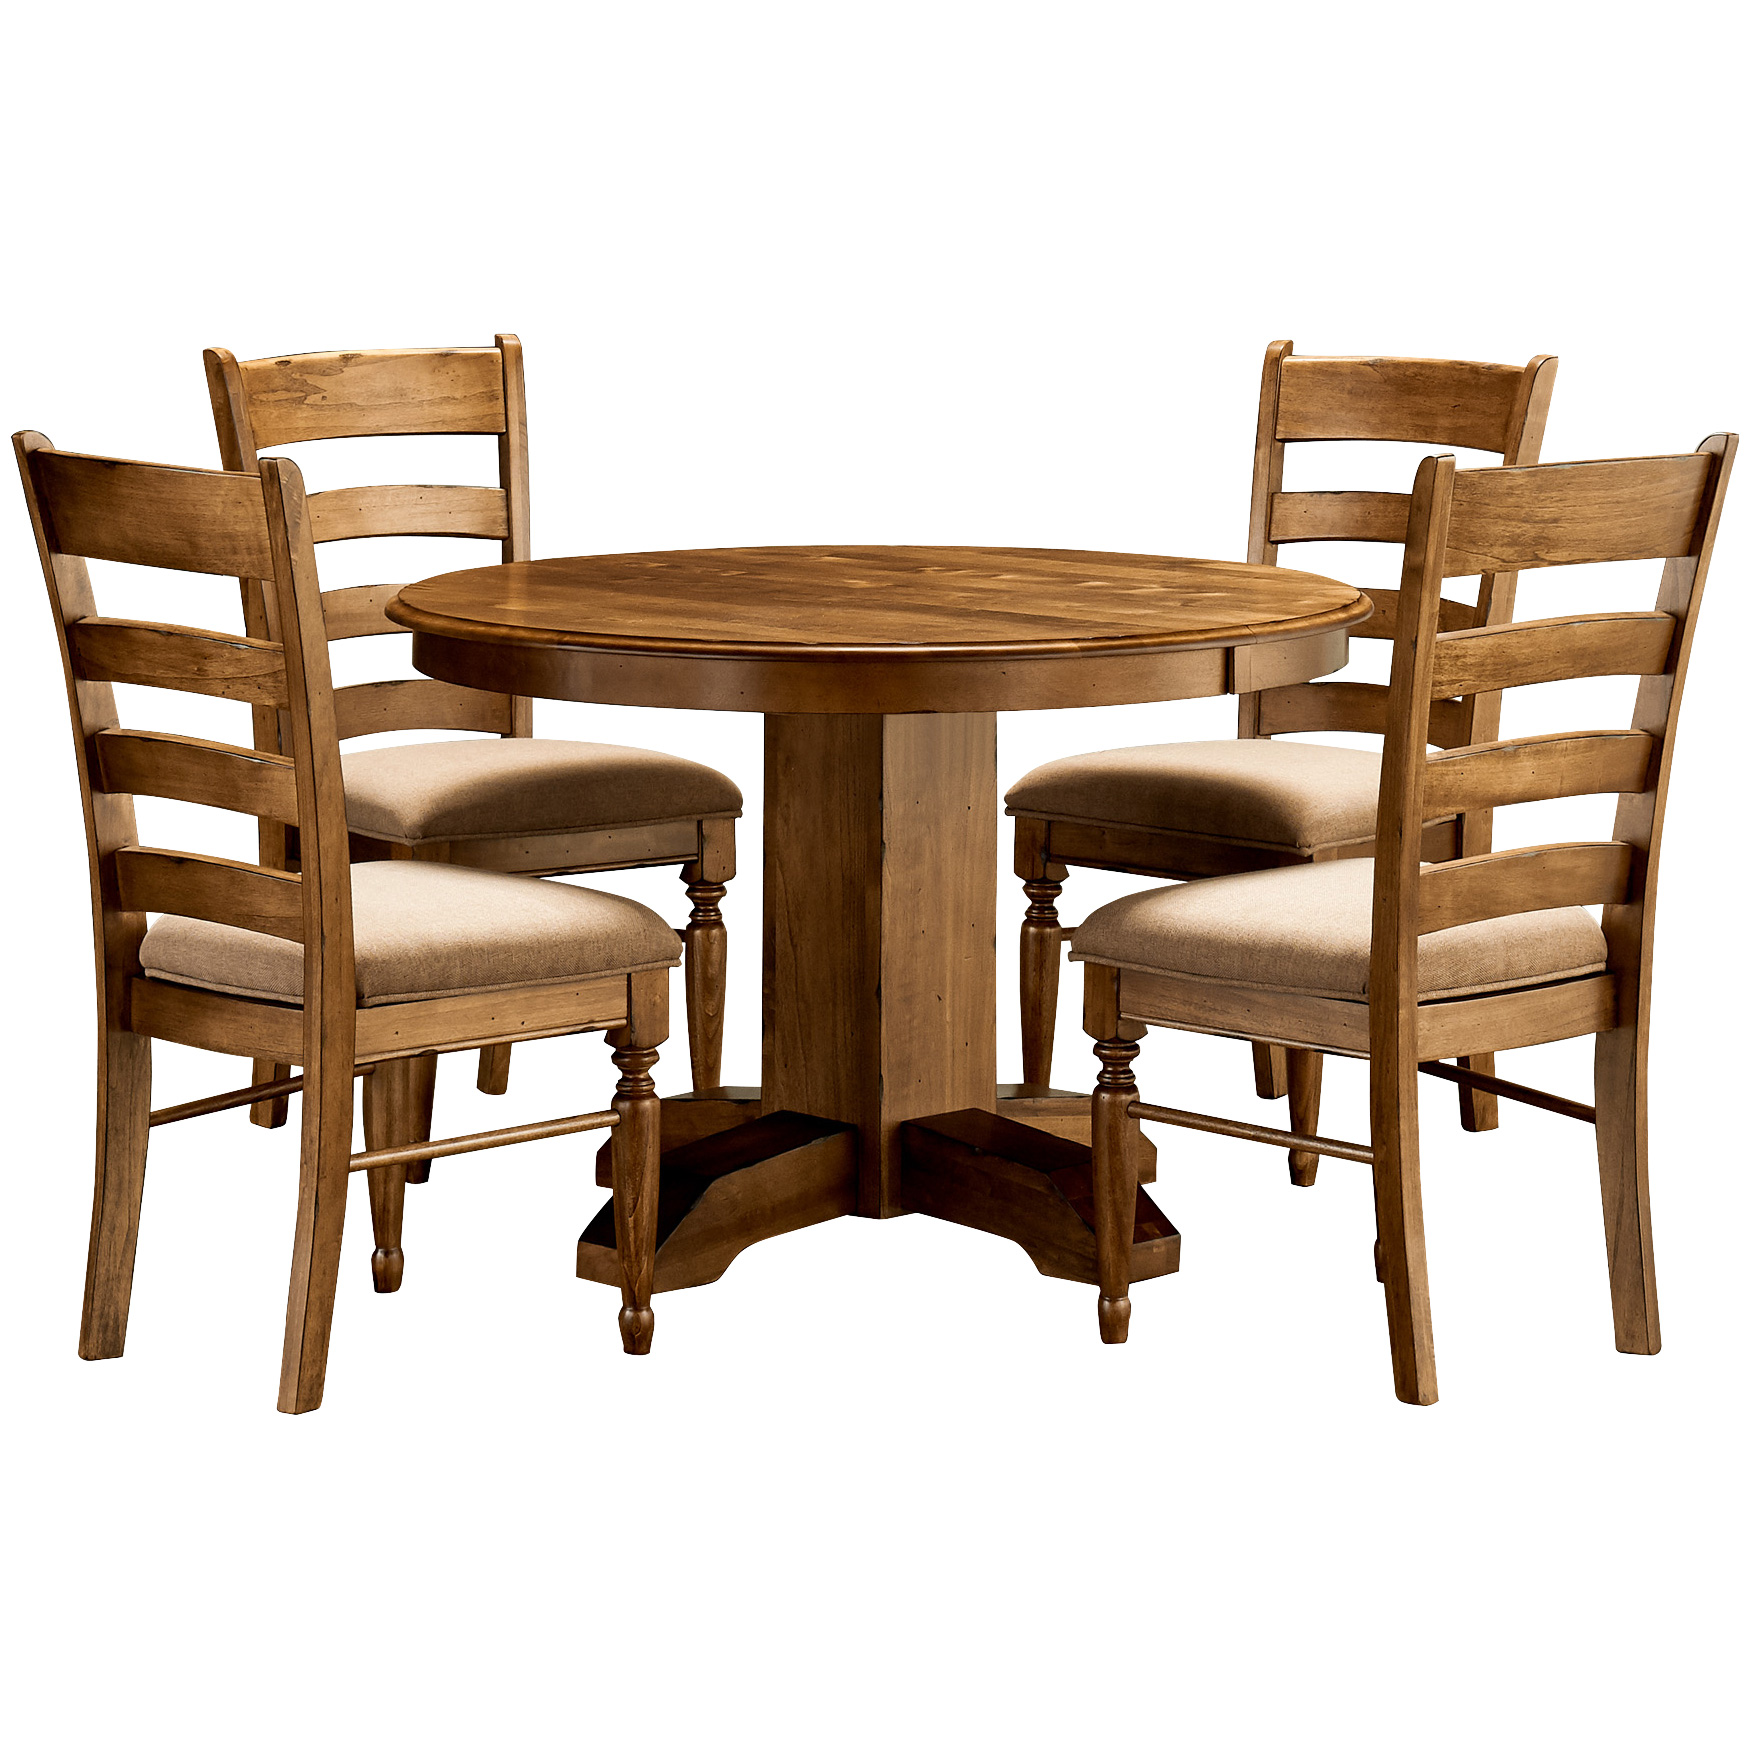 America | Bennett Smokey Quartz 5 Piece Upholstered Round Dining Set